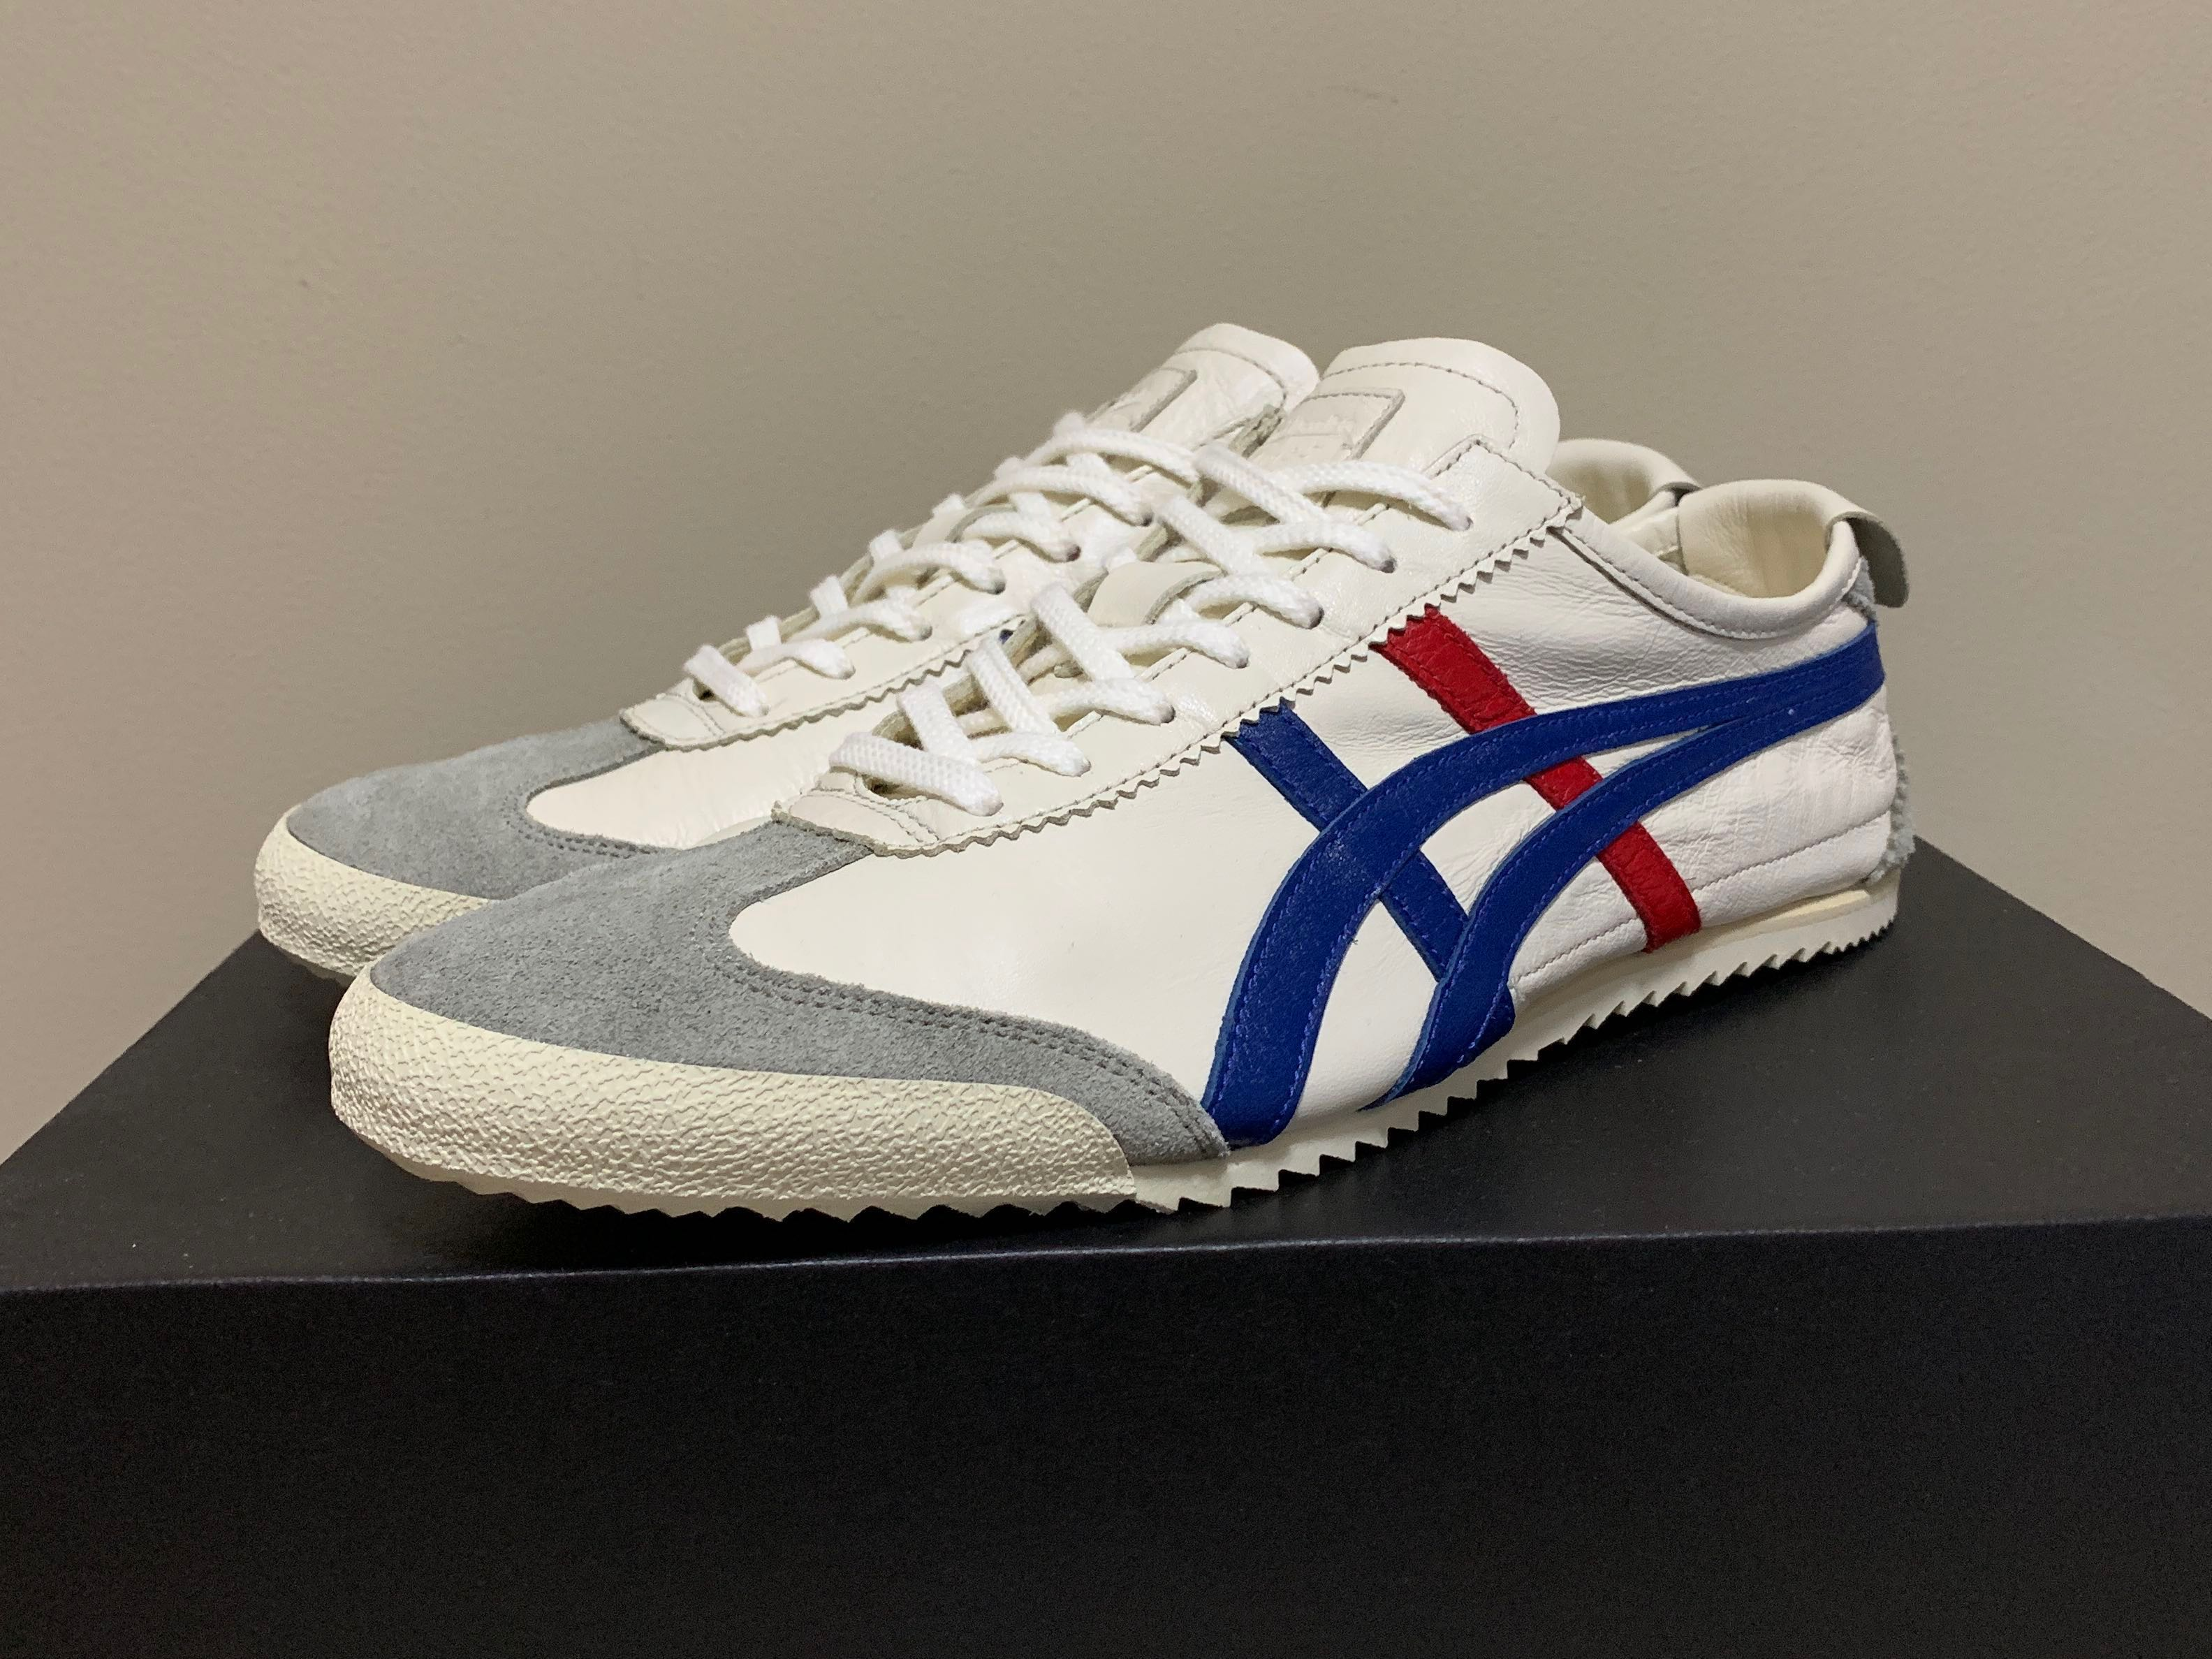 huge discount 3afe7 ab4bd Onitsuka Tiger Mexico 66 Deluxe - White, Men s Fashion, Footwear, Sneakers  on Carousell